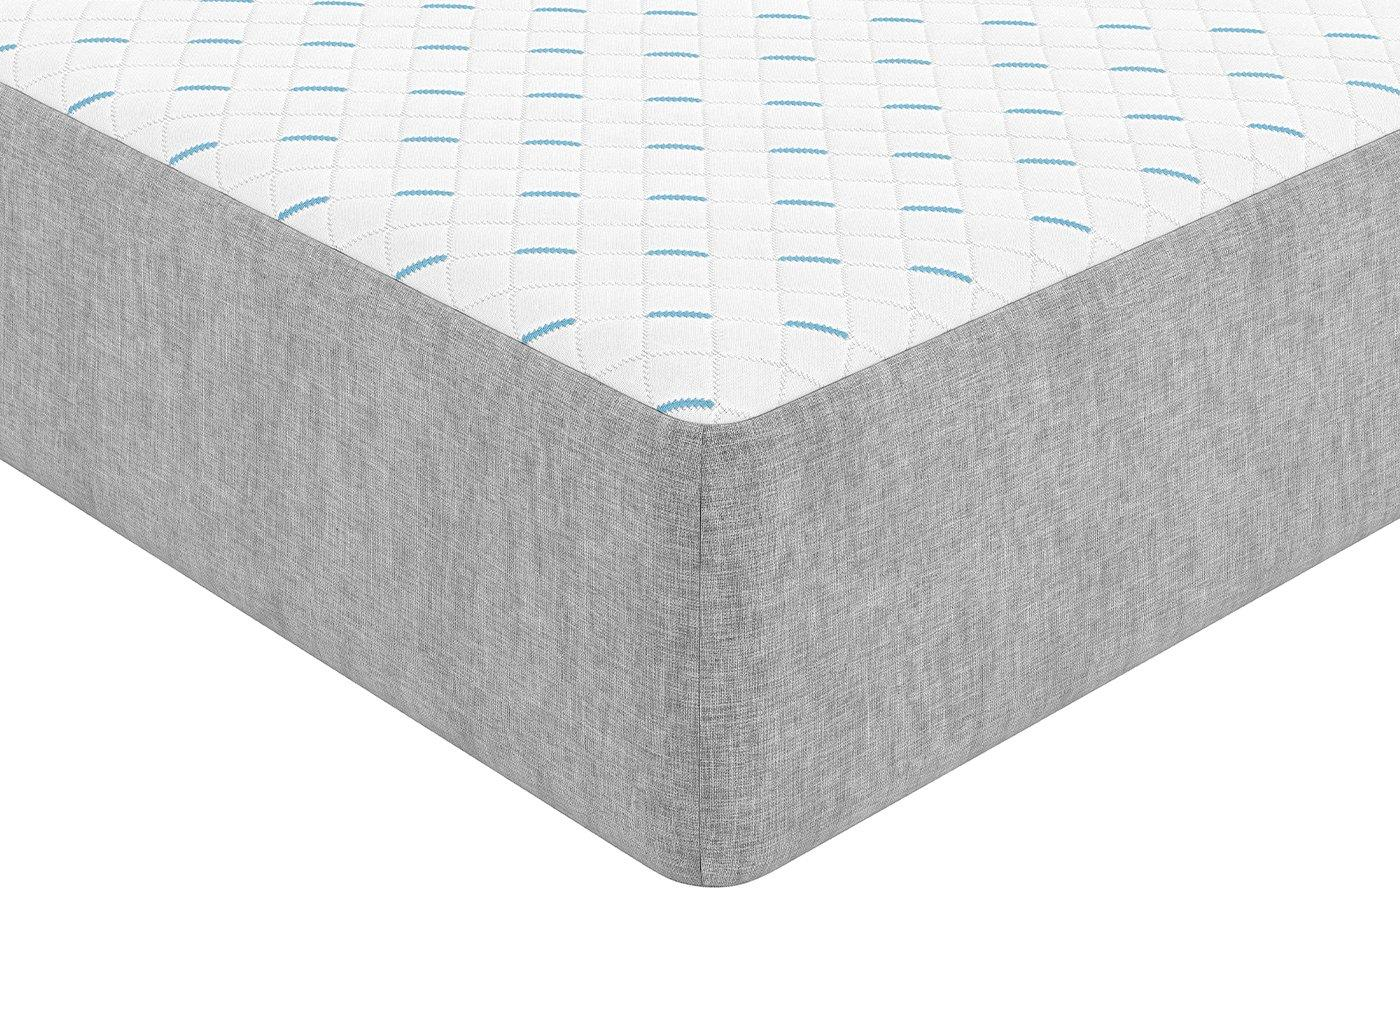 Doze Cora S Mattress 3'0 Single